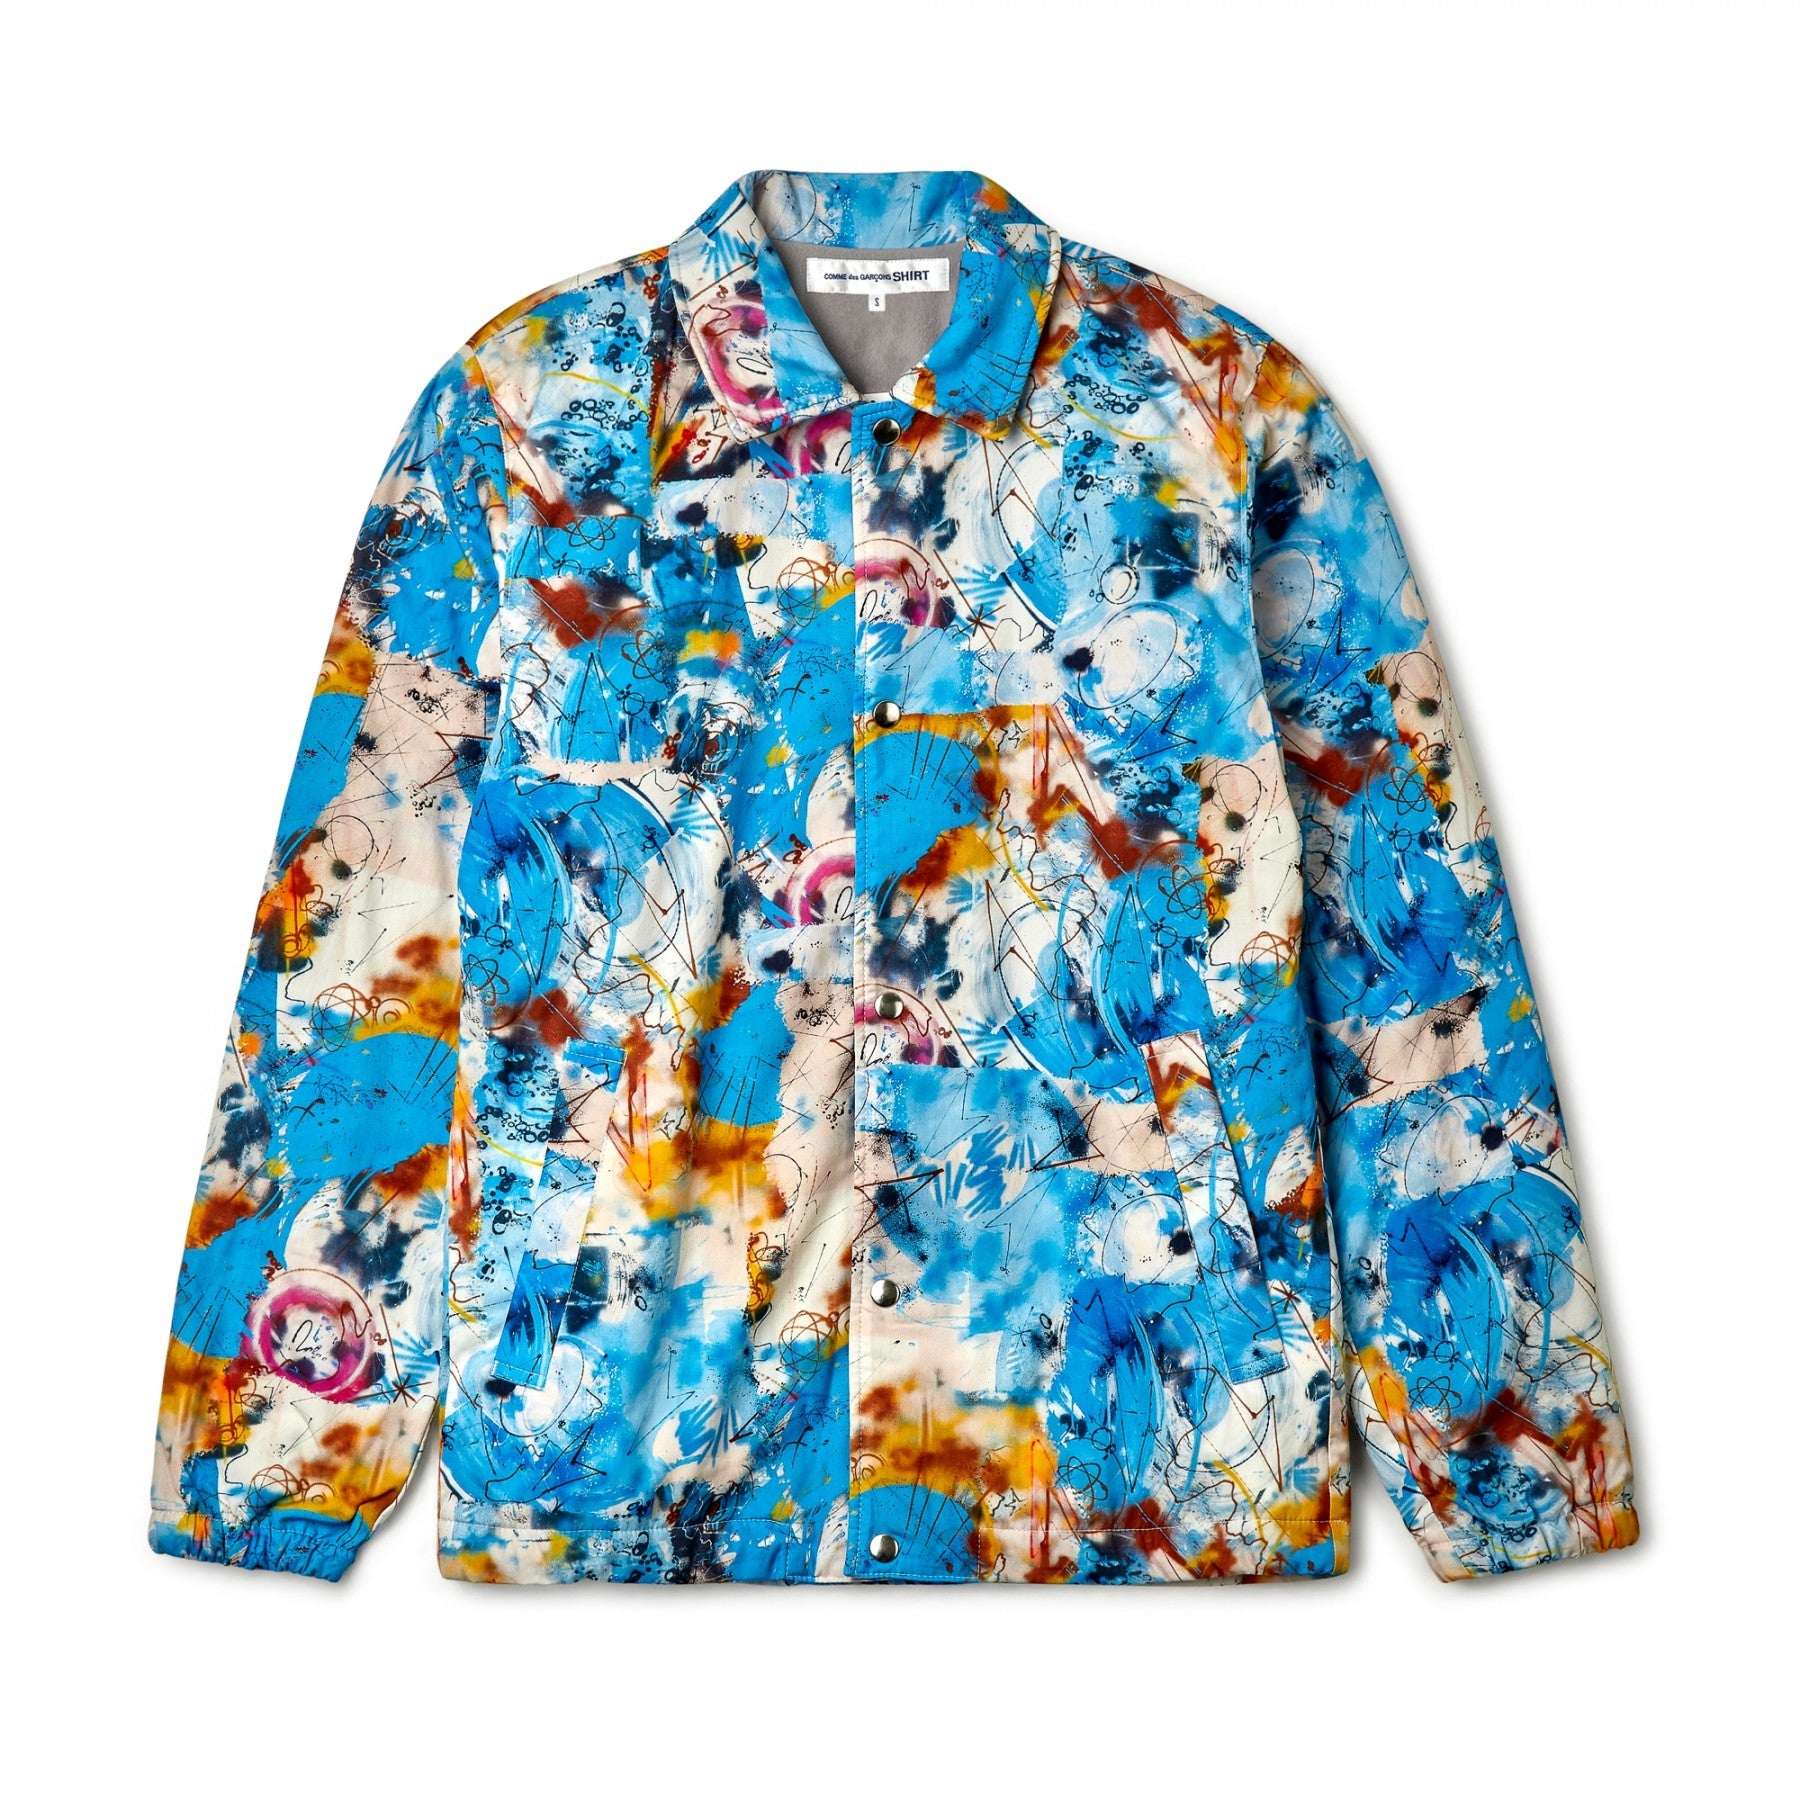 Blue CDG Shirt x Futura Coach Jacket